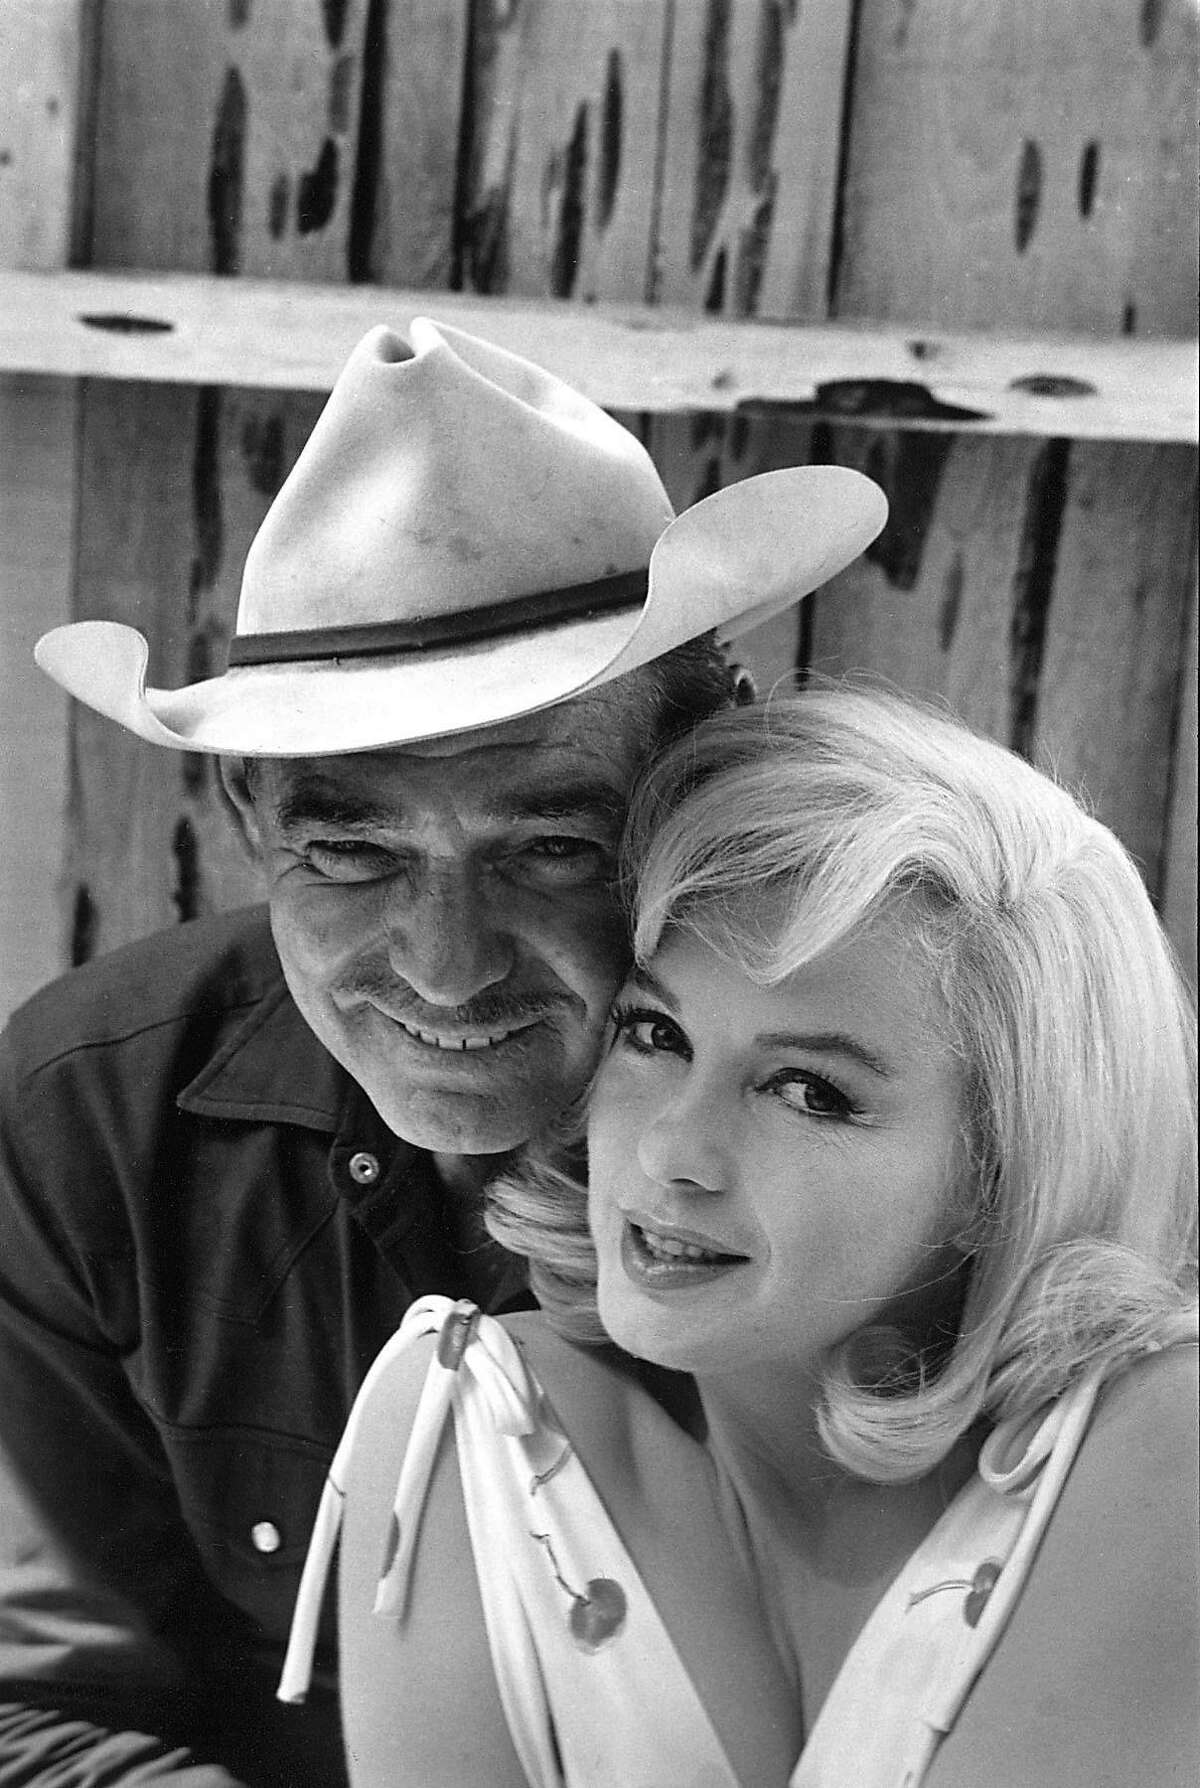 """THIS IS A HANDOUT IMAGE. PLEASE VERIFY RIGHTS. MISFITS30-B-27SEP02-DD-HO The fabled film was the final work of two Hollywood icons, Clark Gable and Marilyn Monroe (pictured), directed by John Huston. Making """"The Misfits"""" @ Photographer: Elliott Erwitt / Magnum Photos Ran on: 02-18-2005 Clark Gable and Marilyn Monroe in The Misfits. Ran on: 06-01-2006 Marilyn Monroe with Clark Gable in The Misfits (1961), written by Arthur Miller, her third husband. It was her second-to-last film. Ran on: 10-10-2010 Clark Gable and Marilyn Monroe starred in The Misfits."""